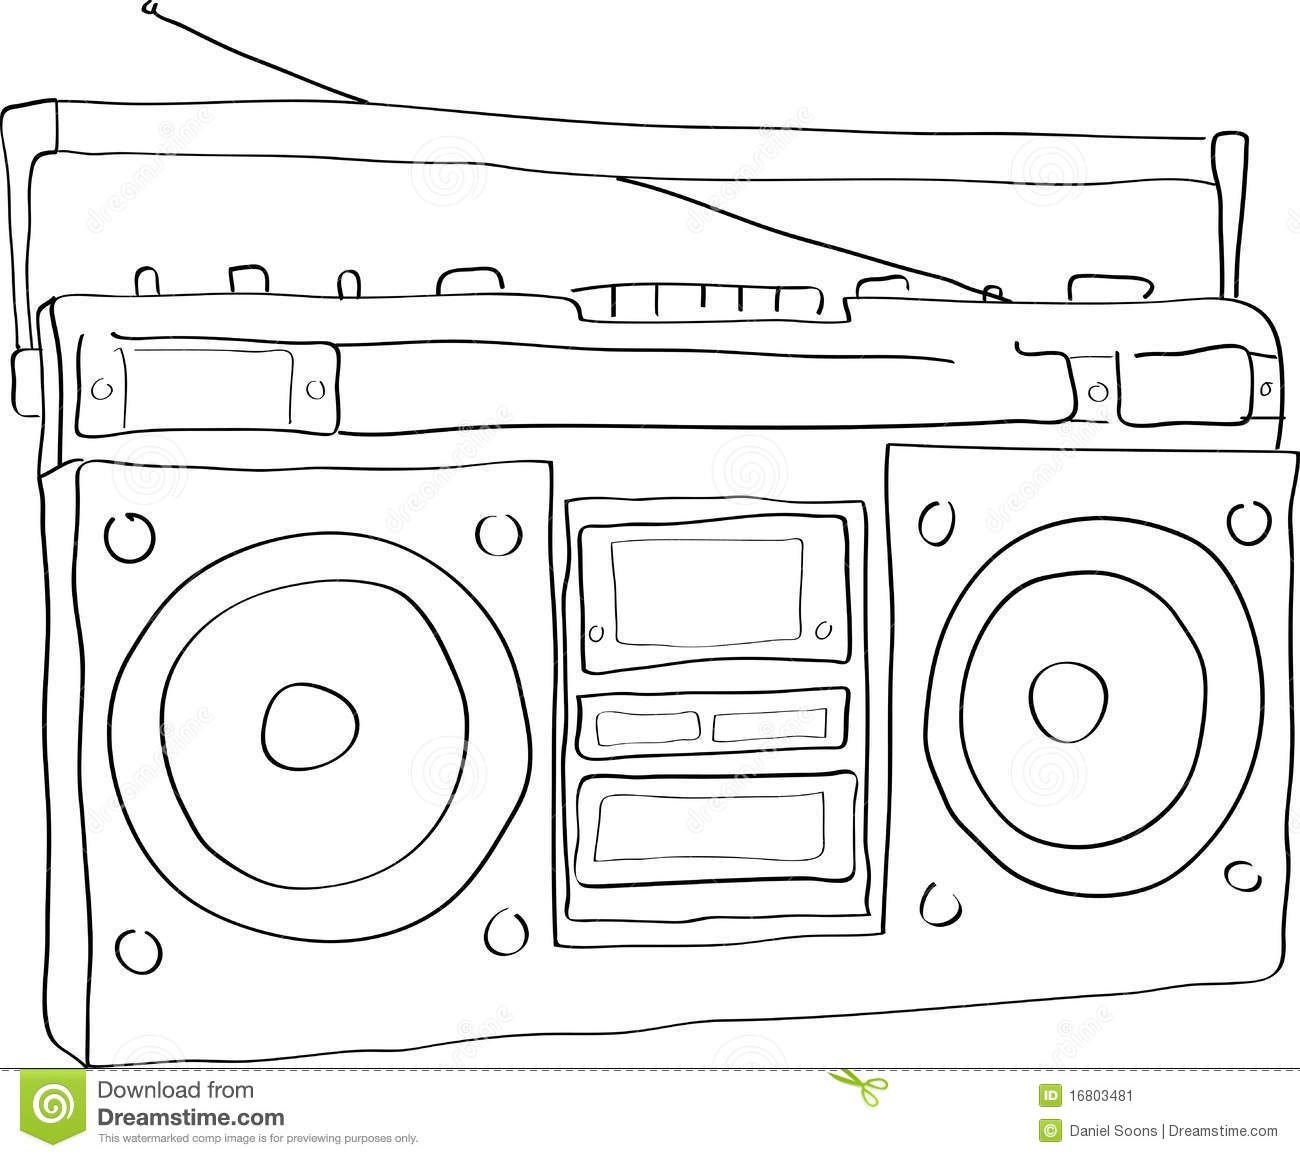 Free Coloring Pages Of Drawing Radios